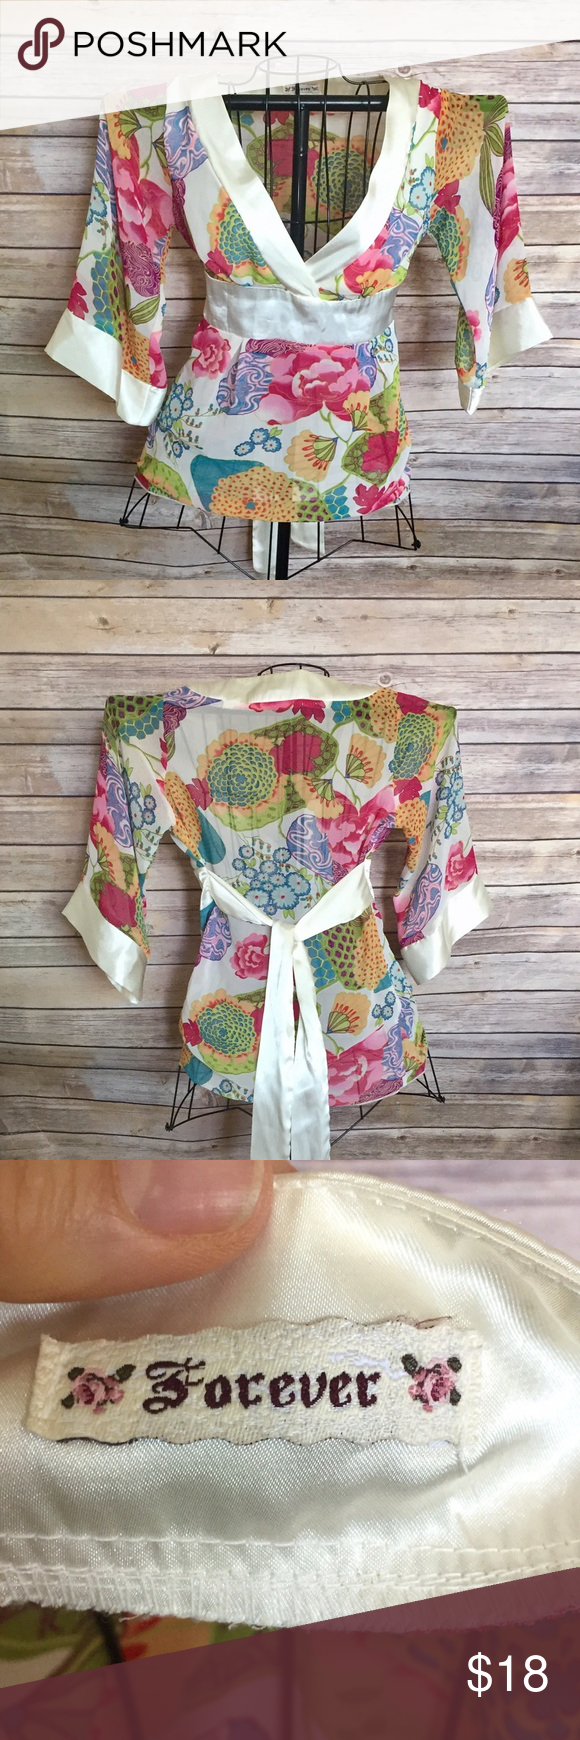 Beautiful floral blouse BEAUTIFUL floral kimono style blouse in vibrant shades of , pink , yellow, blue green orange , satin trim sleeves , hem & waist & attached tie belt , size tags have been removed but it's a size small forever Tops Blouses